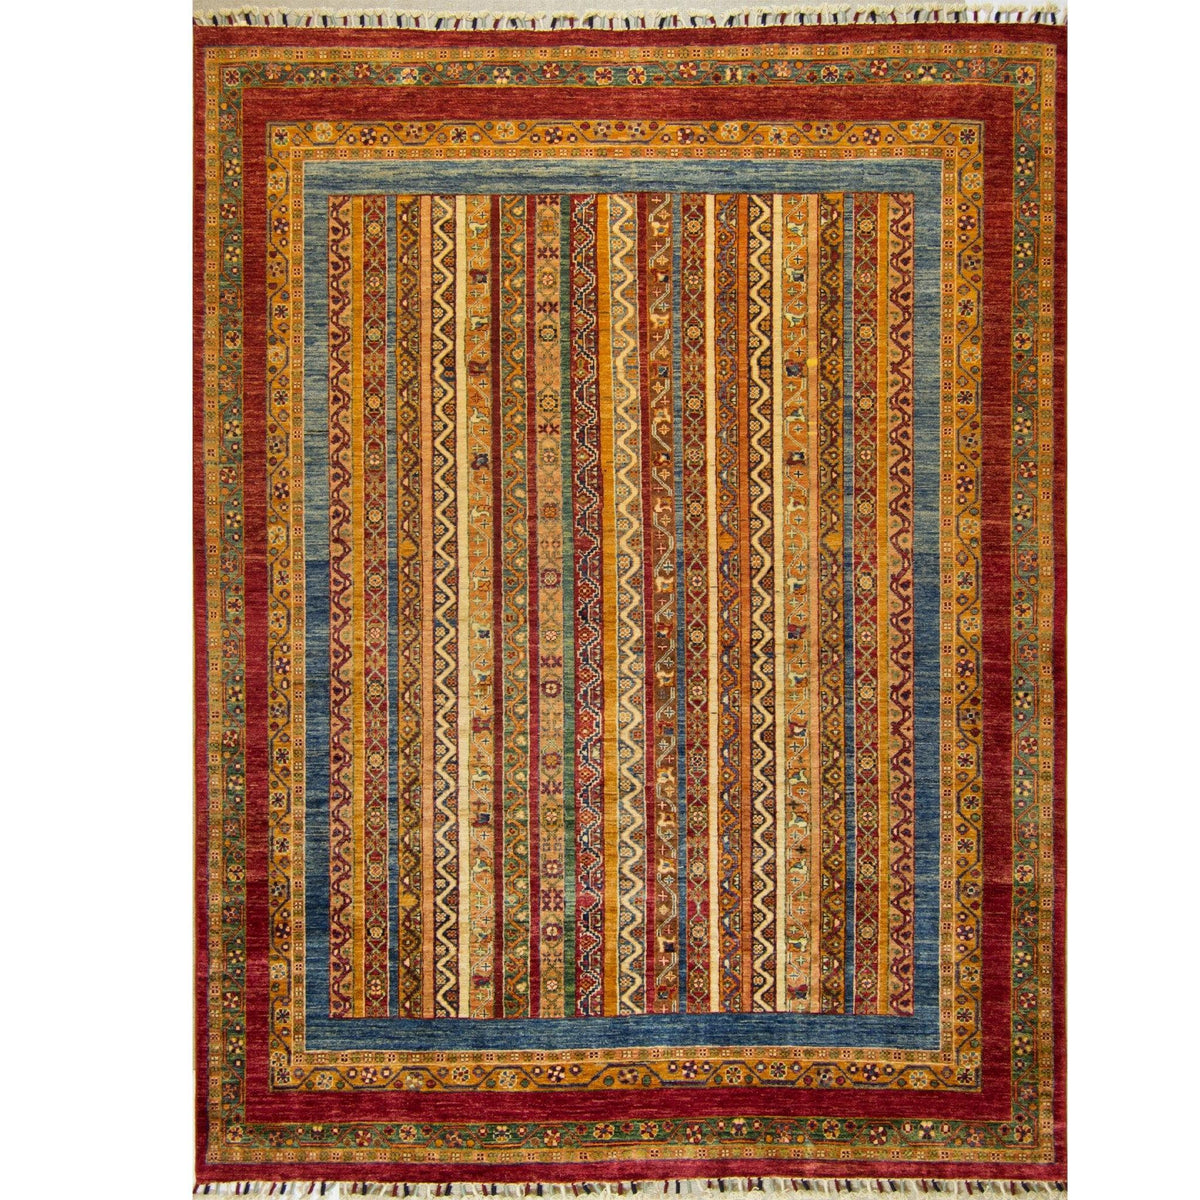 Super Kazak Persian-Rug | House-of-Haghi | NewMarket | Auckland | NZ | Handmade Persian Rugs | Hand Knotted Persian Rugs